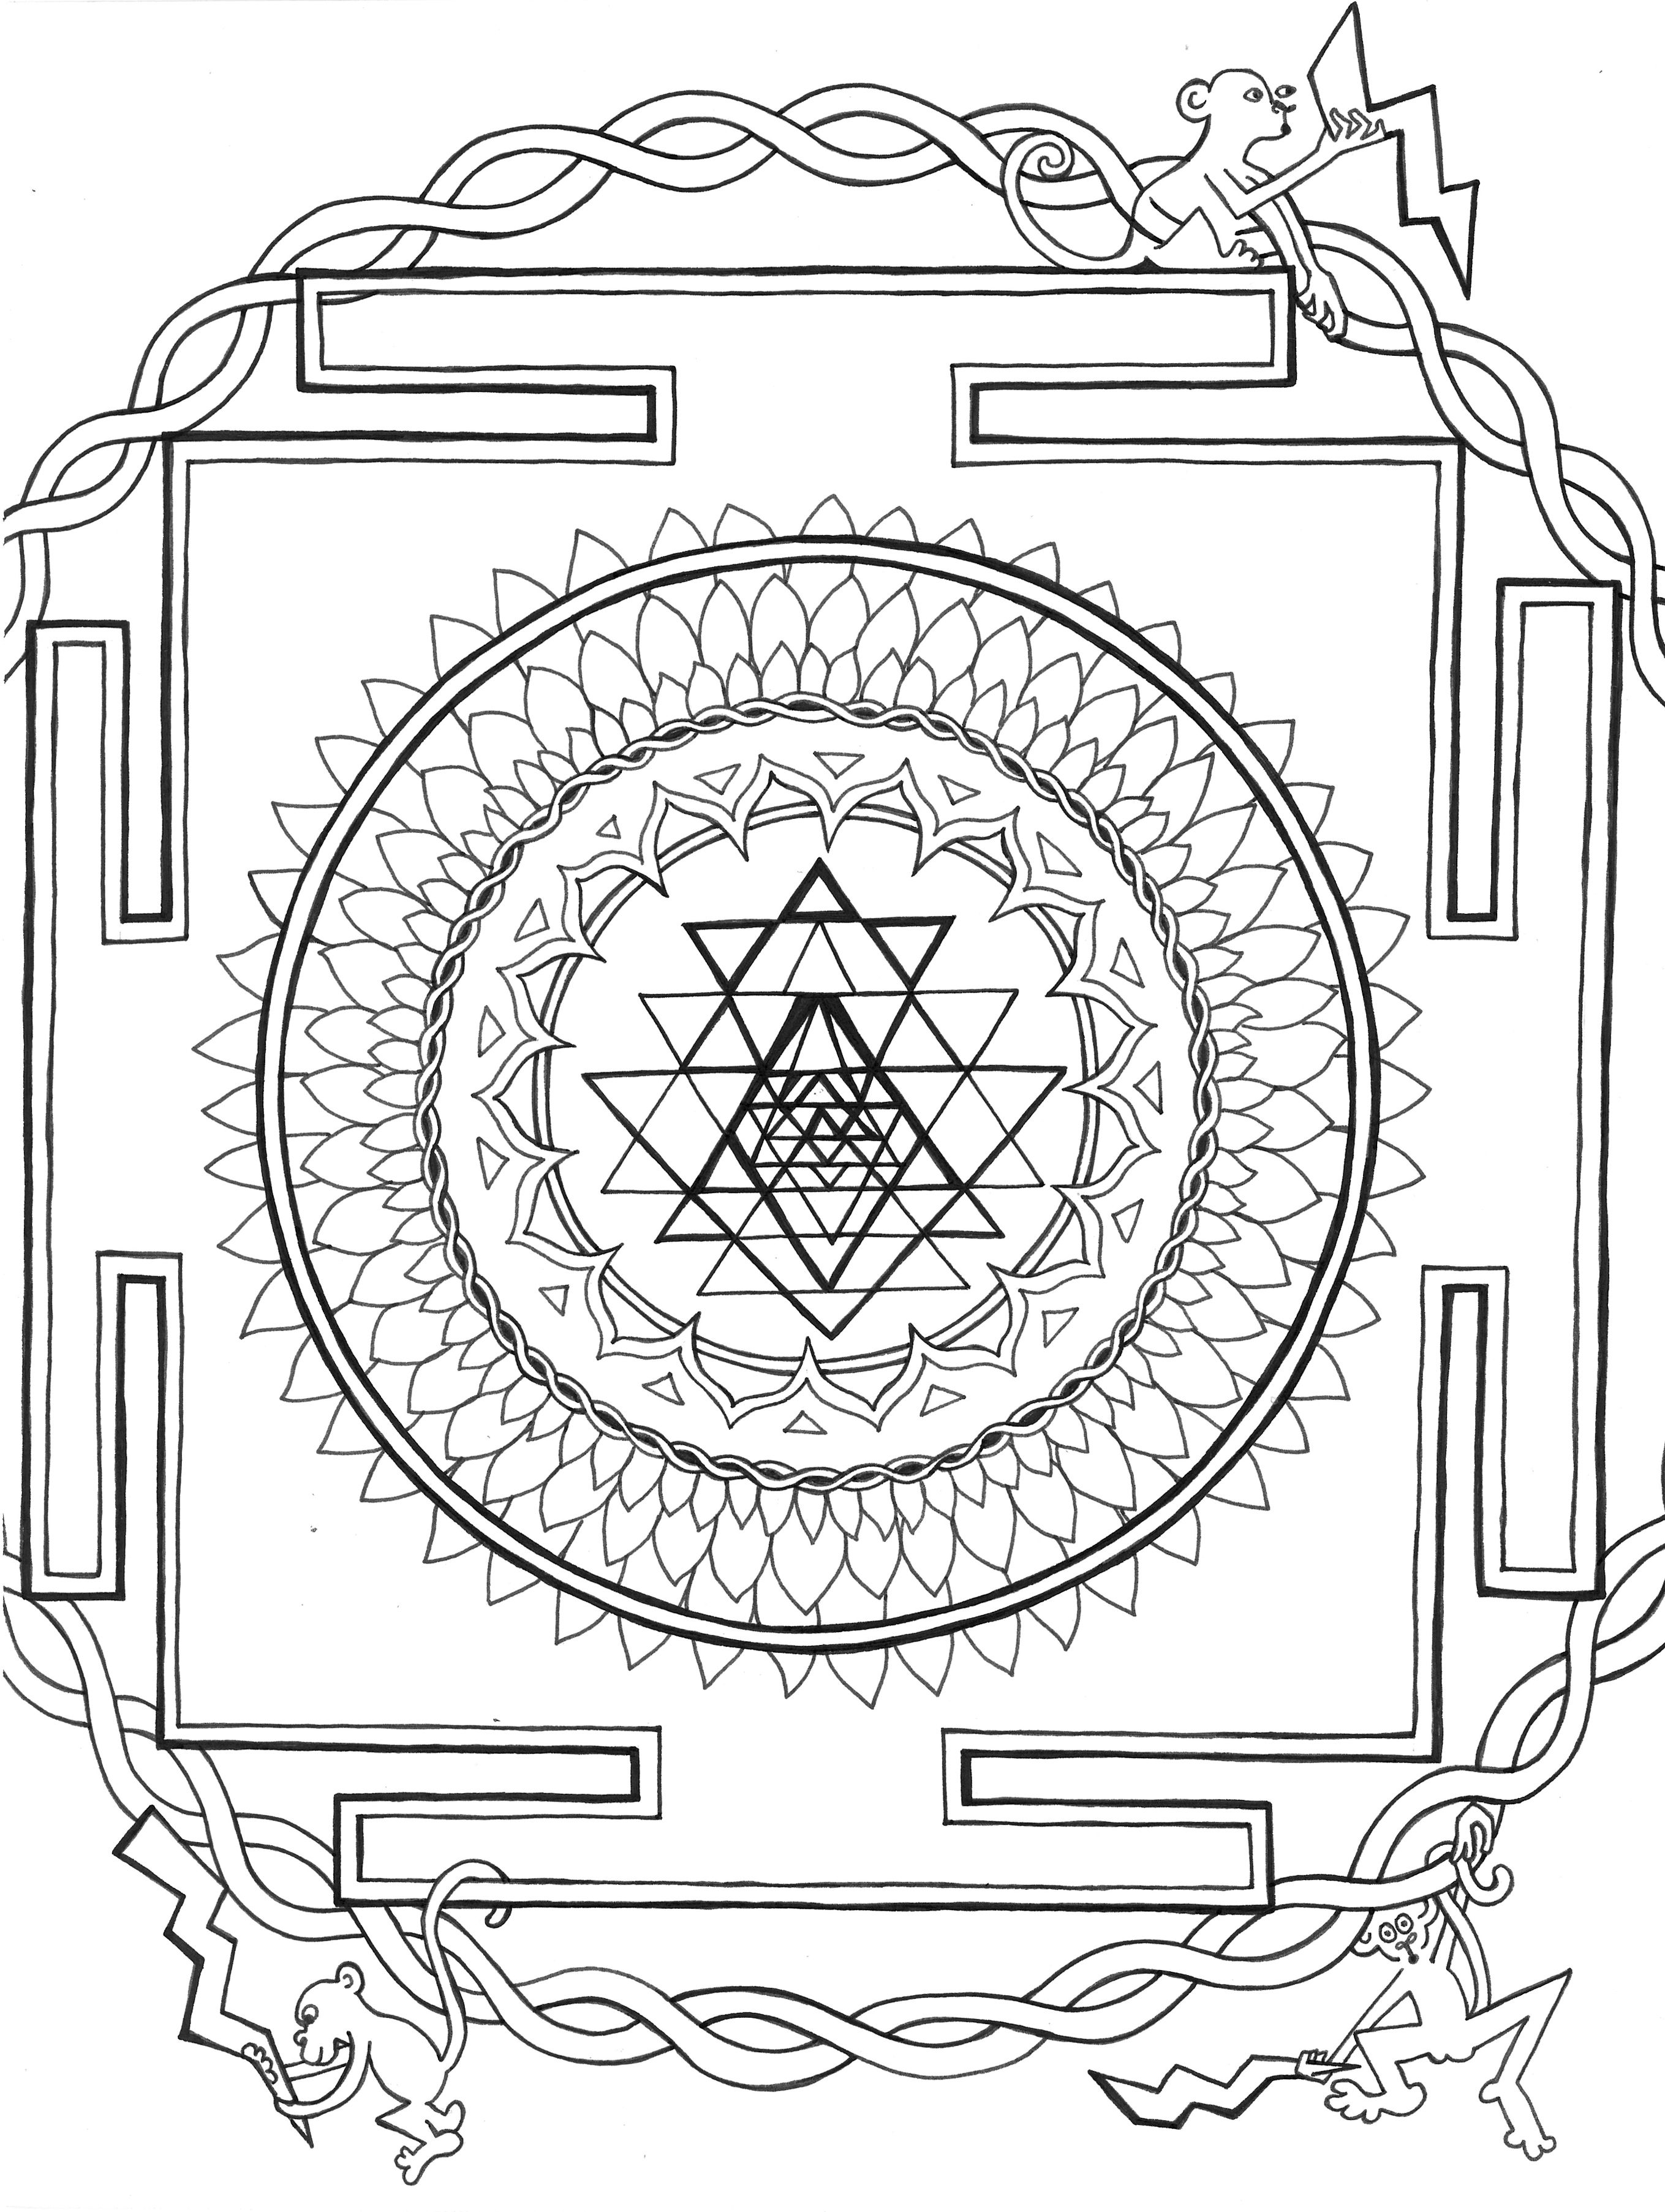 Mandala Translates To Circle In Sanskrit And Is A Powerful Symbol